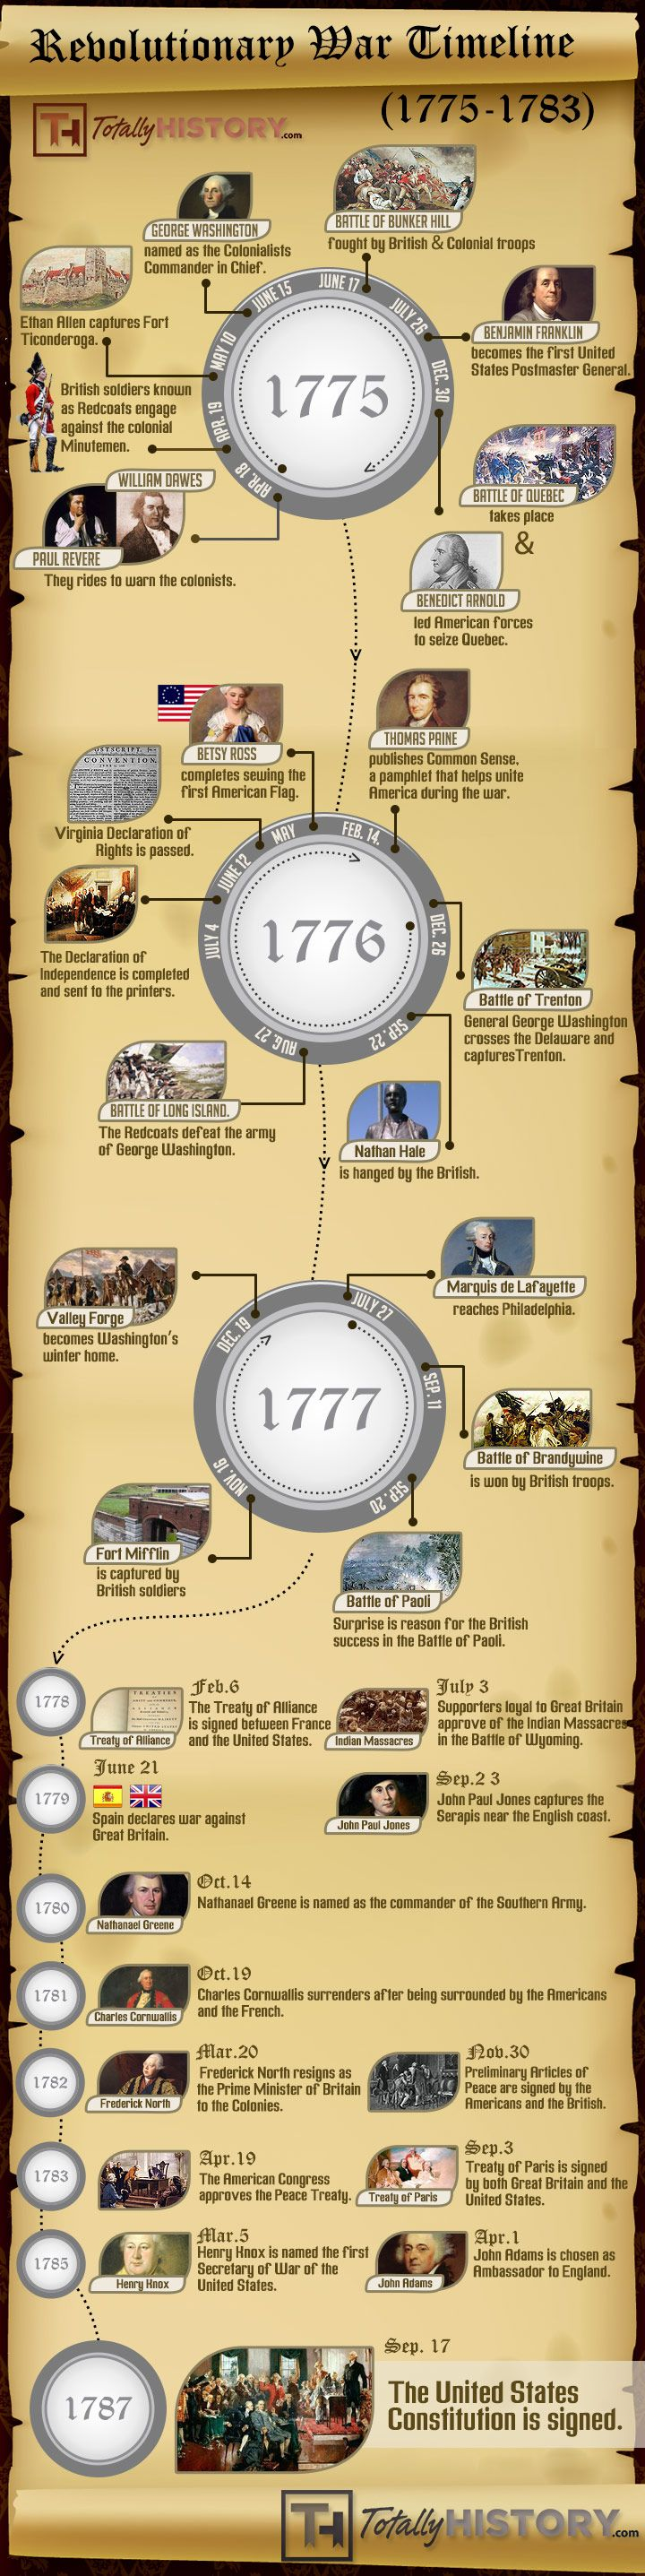 Revolutionary War Timeline – Events of The American Revolution